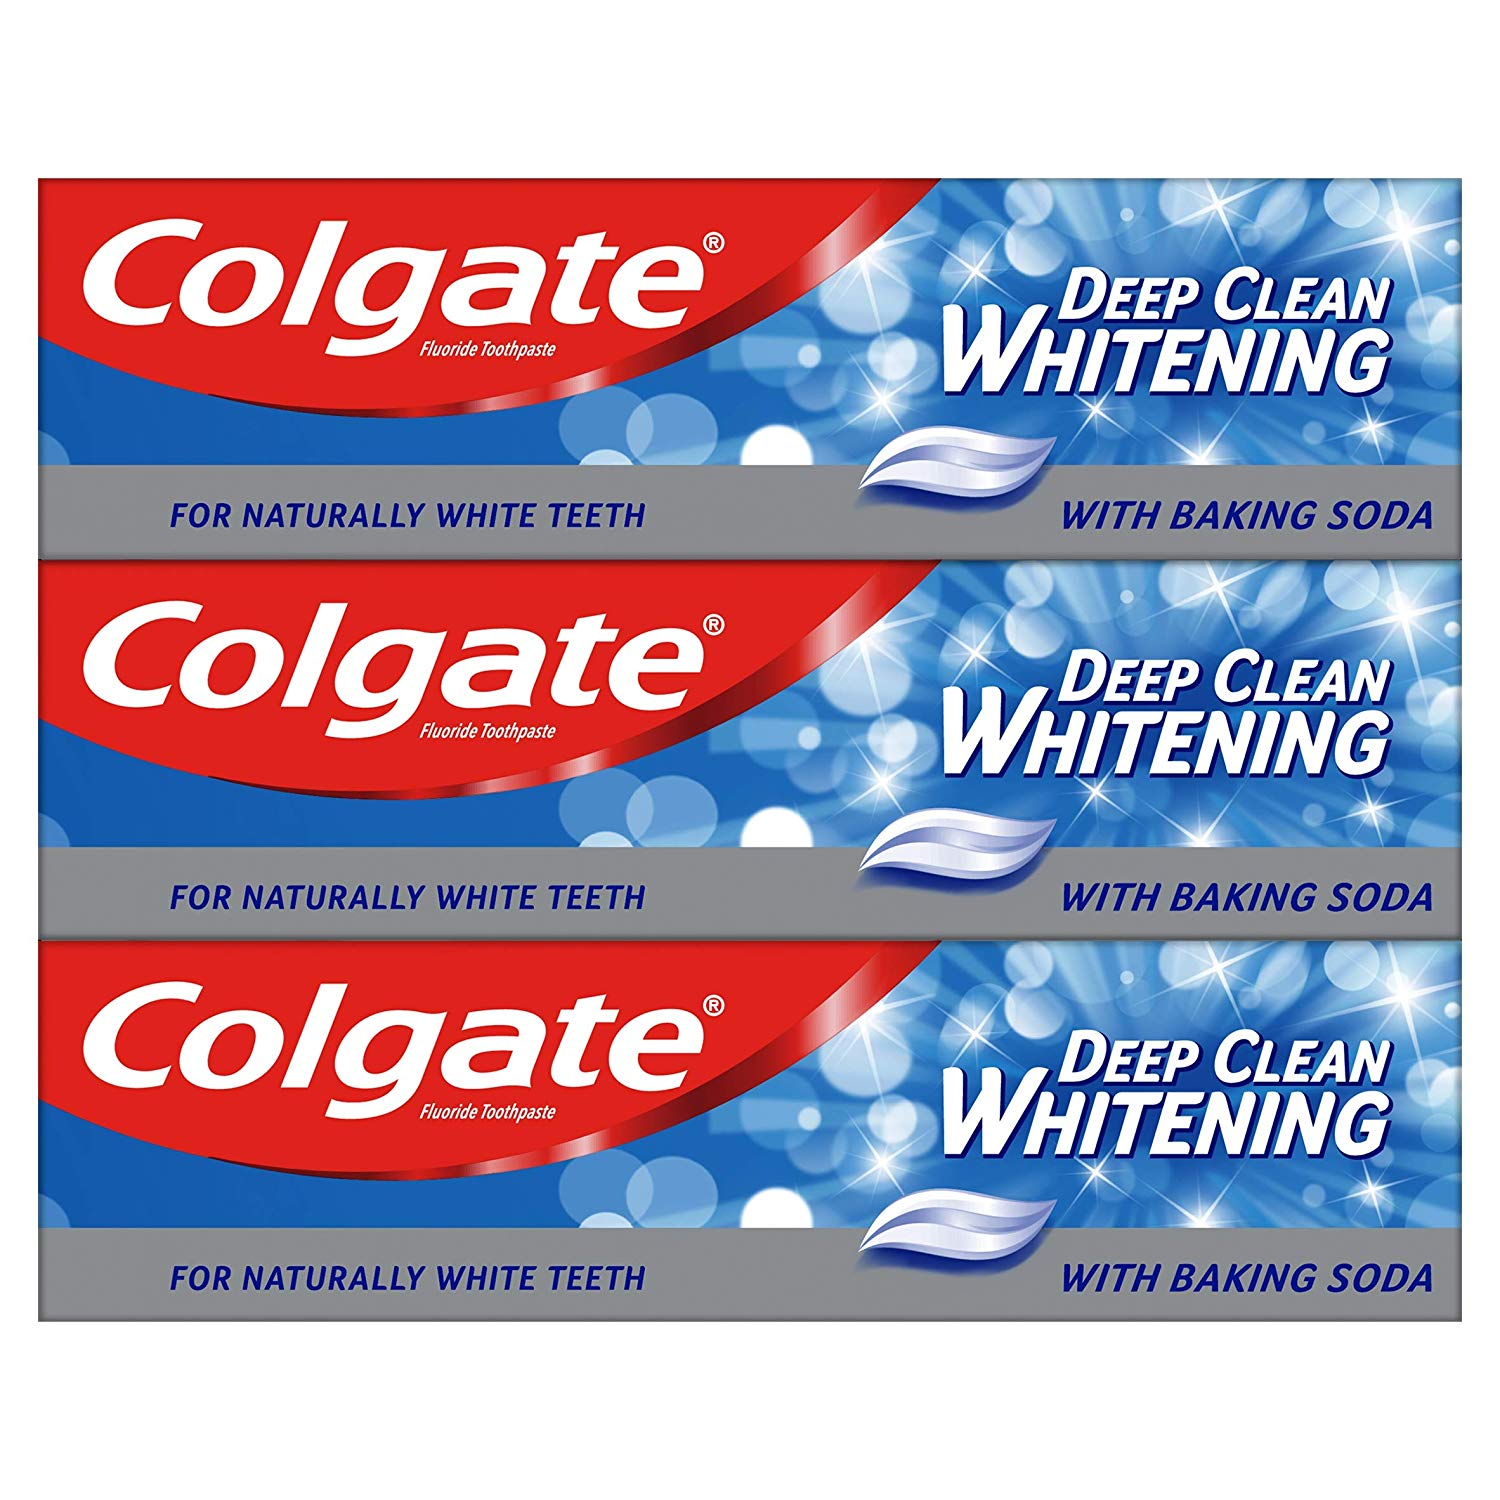 Colgate Deep Clean Whitening Toothpaste 3 x 75ml Multipack £3